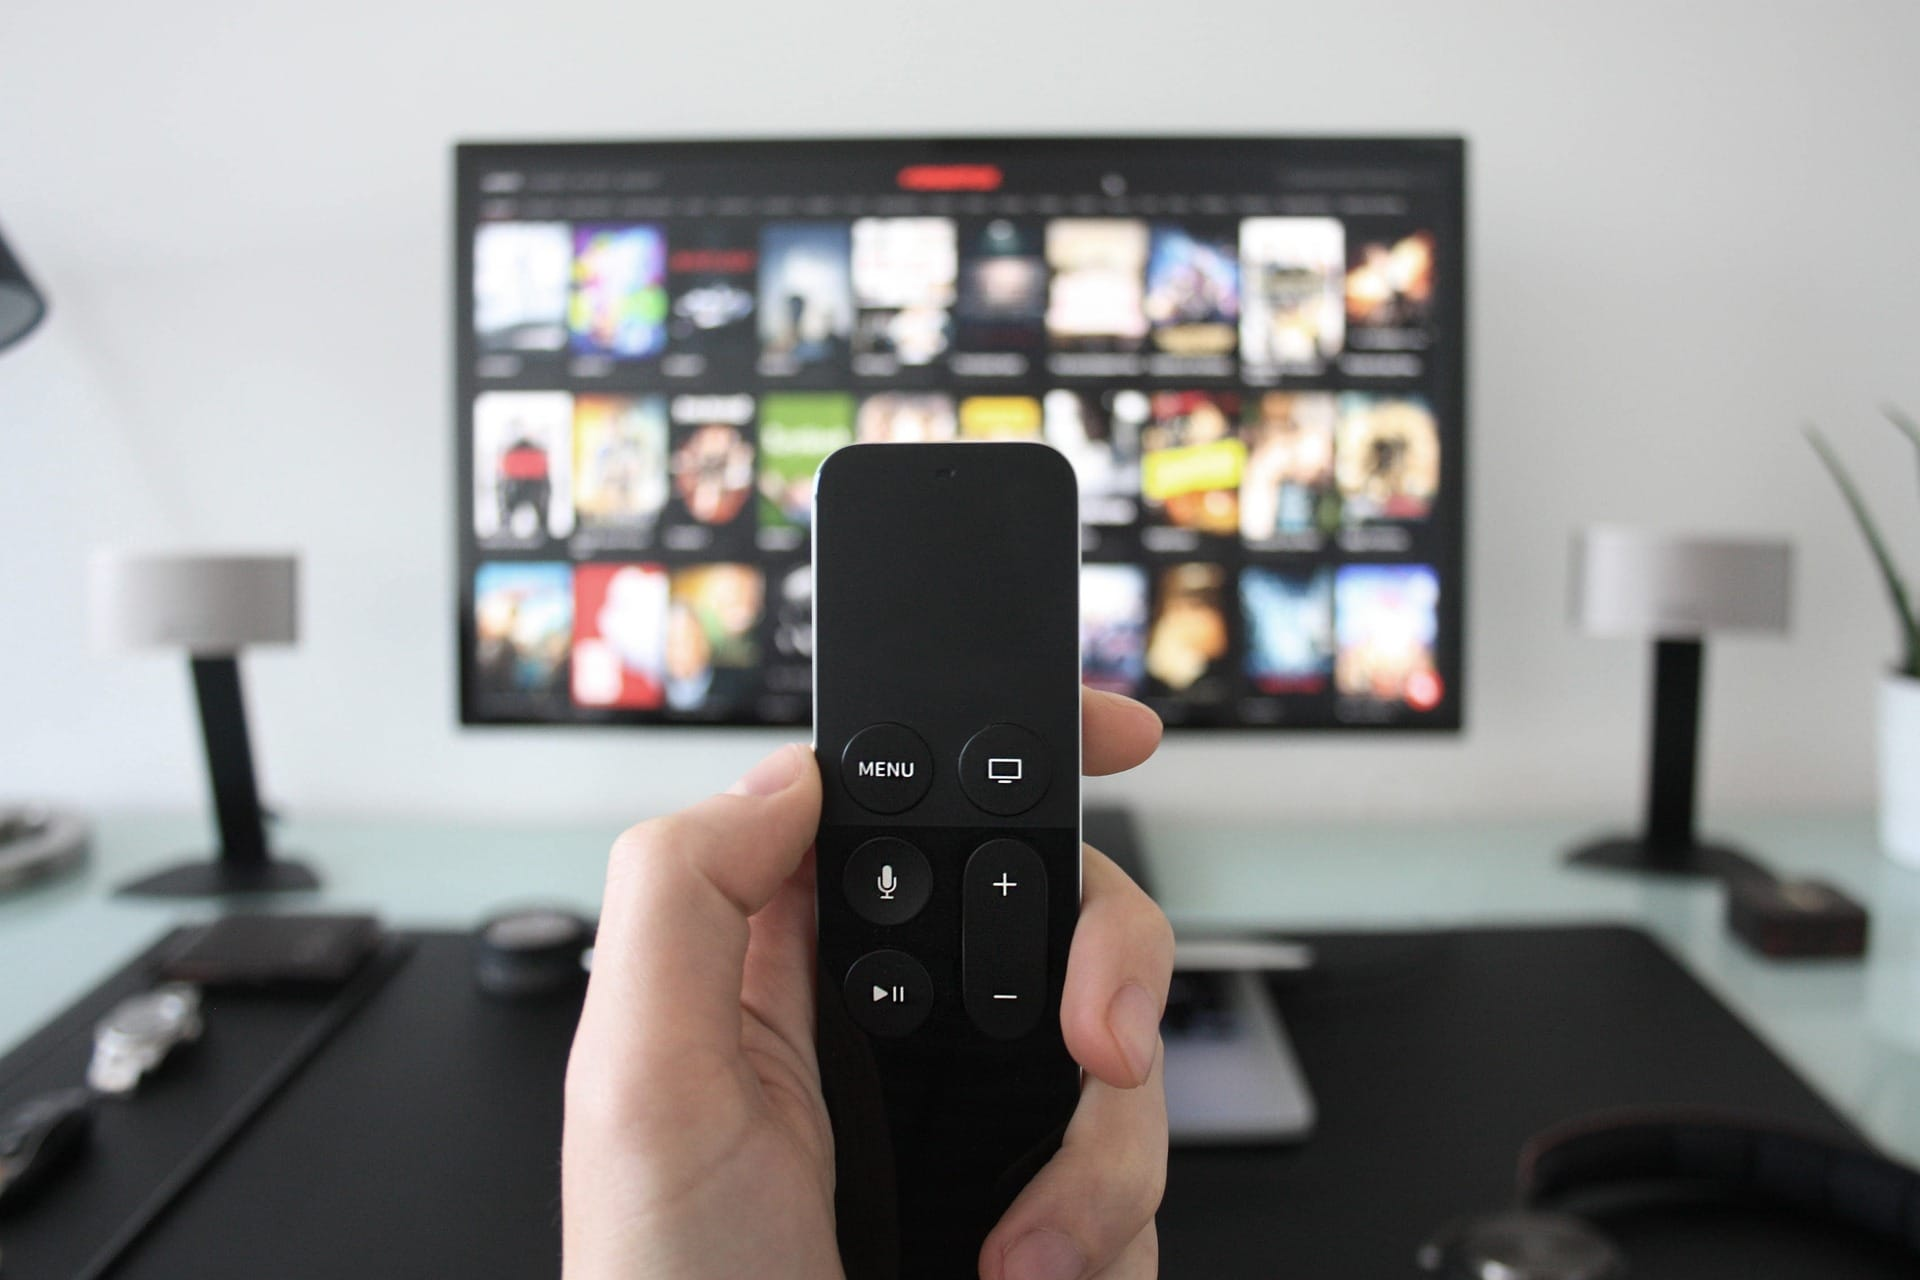 Man holding a Remote that will operate the movie he will stream on the TV